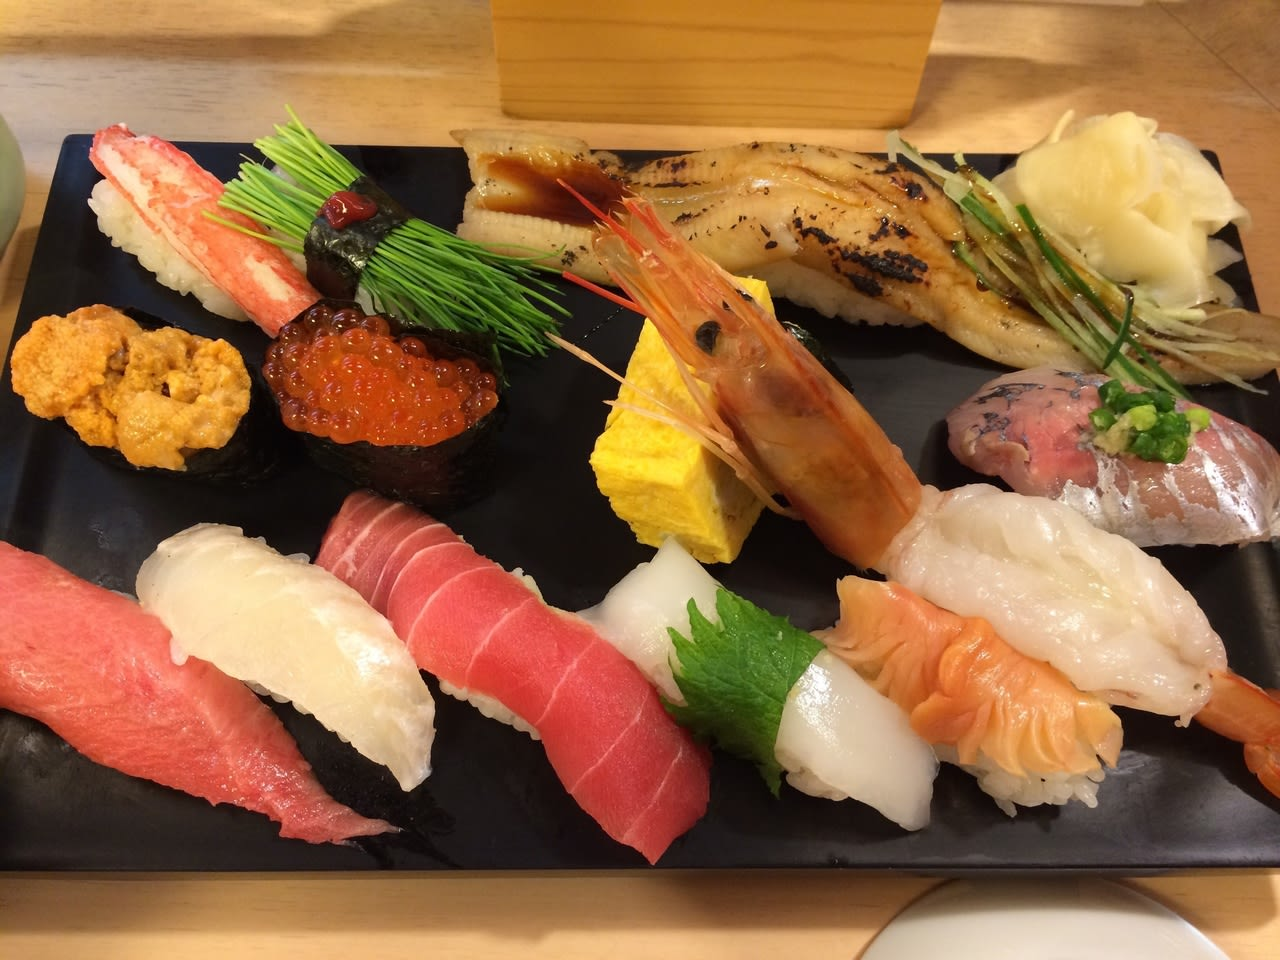 Tokusei Sushizanmai; The restaurant's recommended menu choice so that you can enjoy everything about sushi on one plate